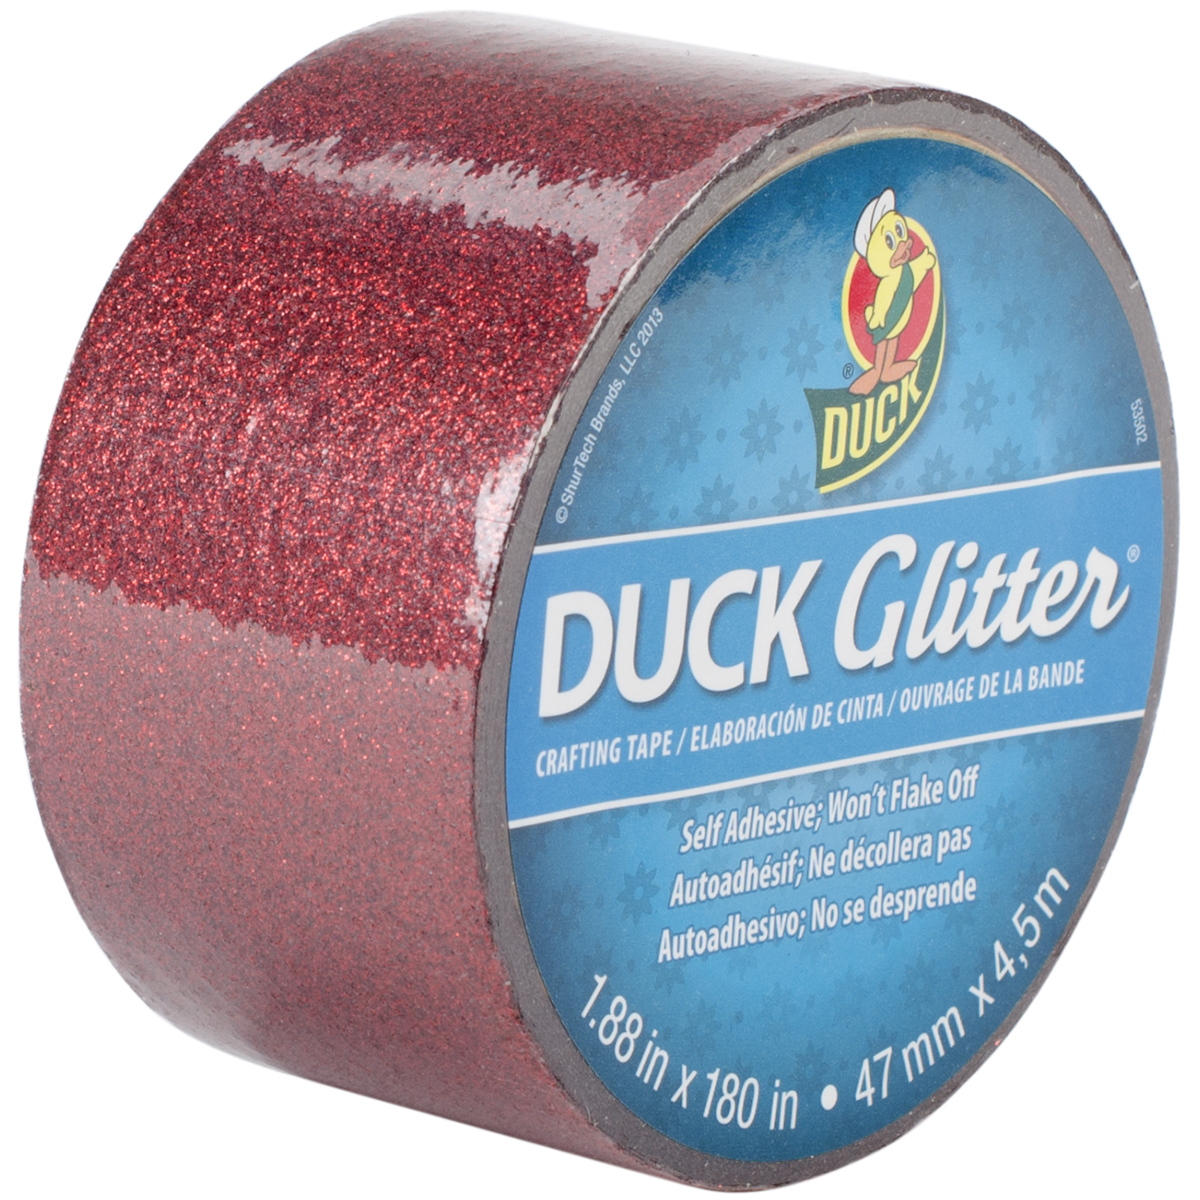 "Duck Tape Glitter Crafting Tape, 1.88"" Wide Roll, Red"